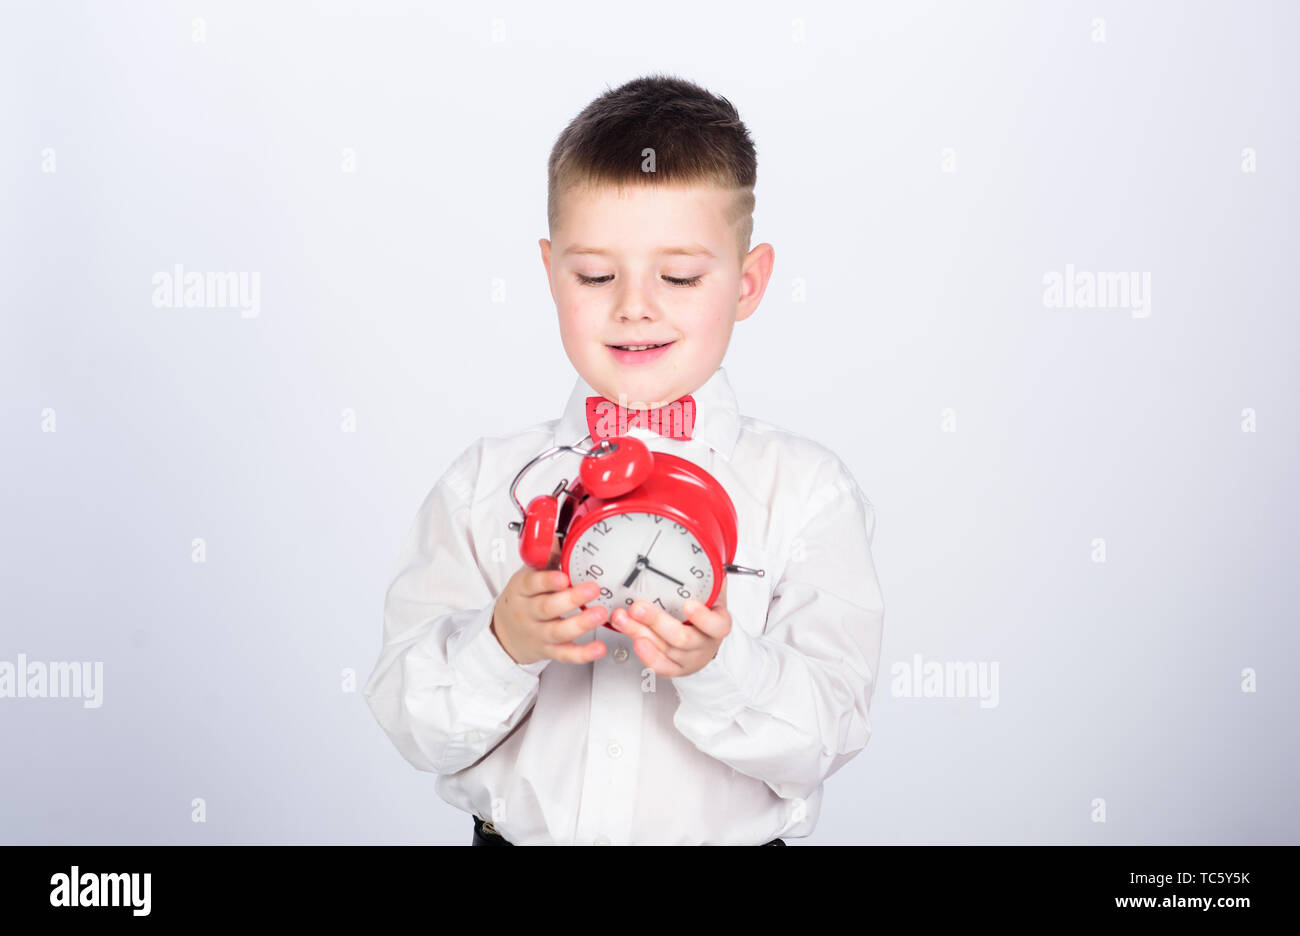 Time management. Morning. Party time. Businessman. Formal wear. tuxedo kid. Happy childhood. little boy with alarm clock. Time to relax. happy child with retro clock in bow tie. Quick chat at morning. - Stock Image